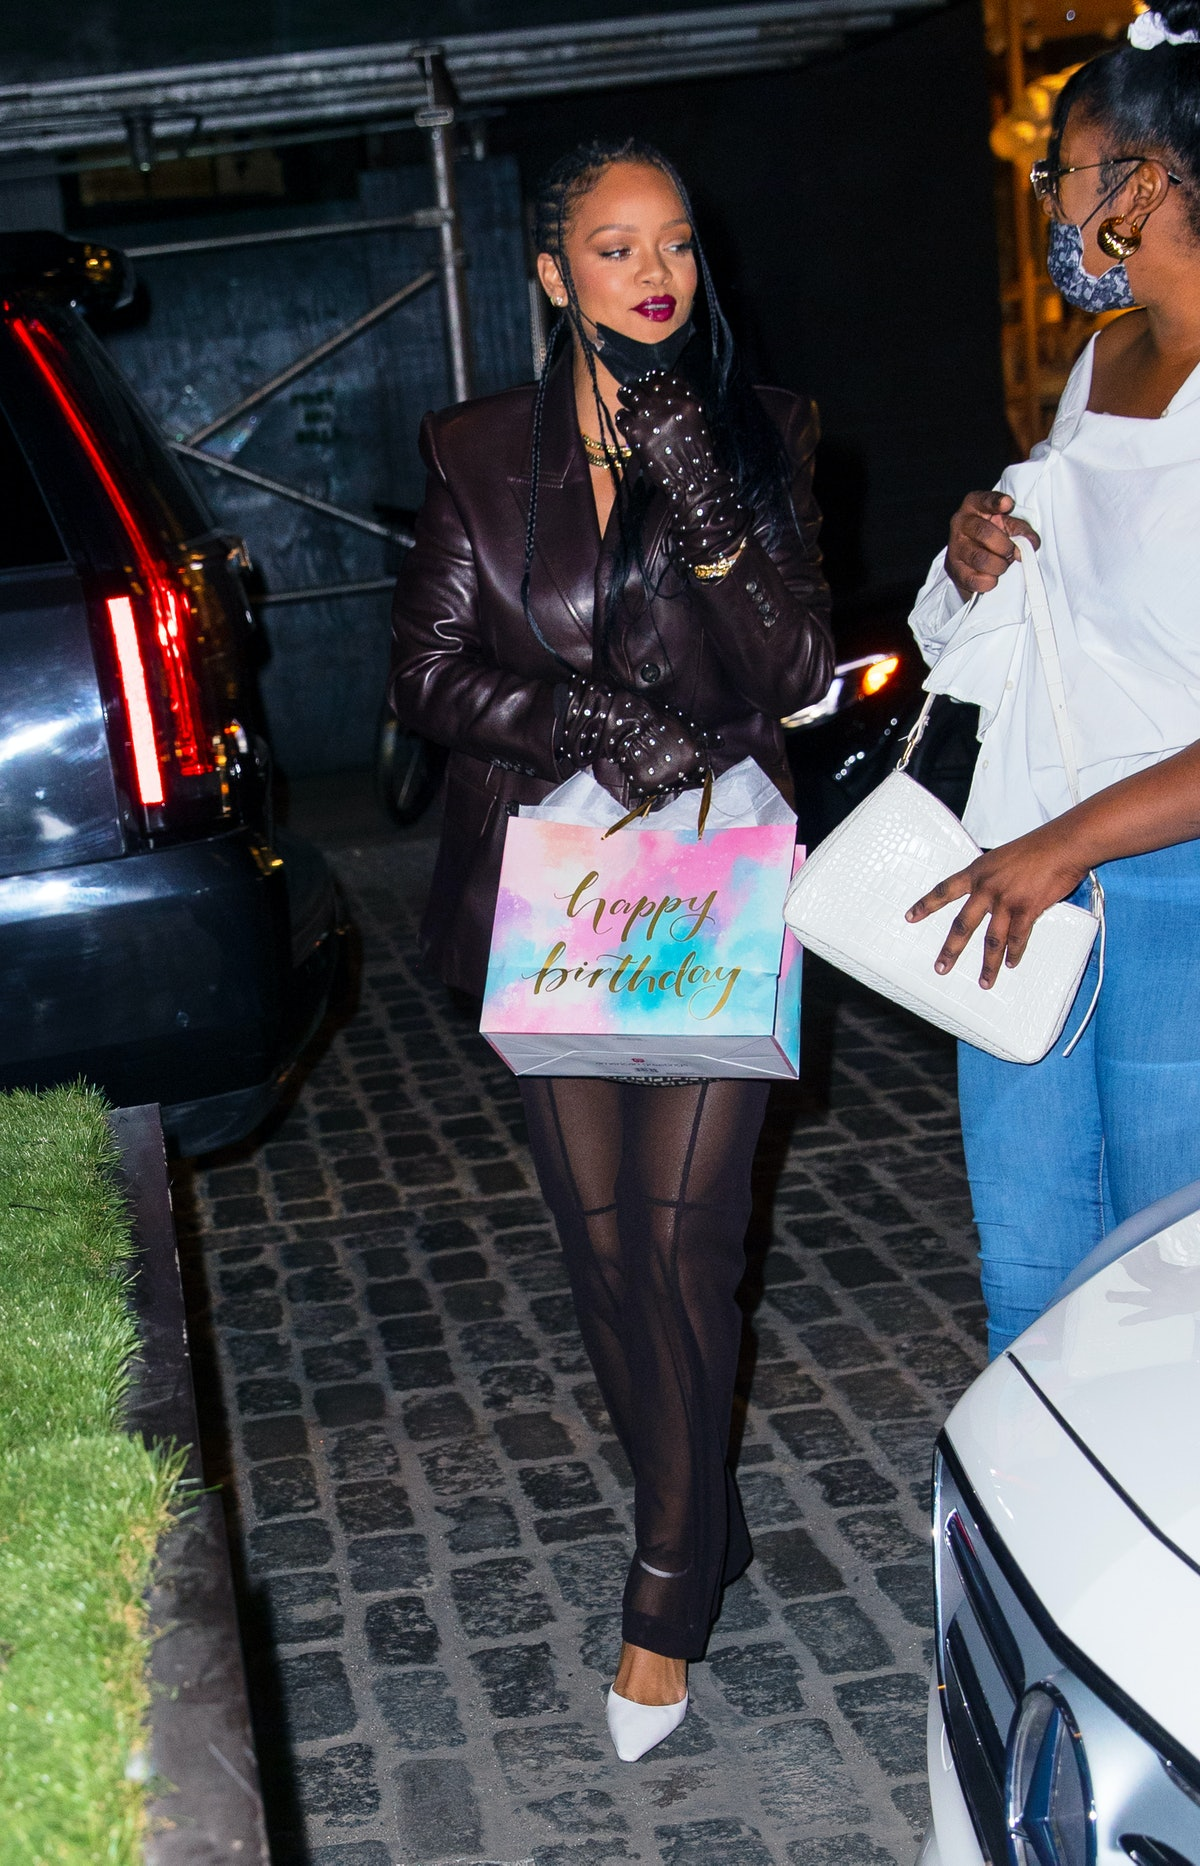 NEW YORK, NEW YORK - APRIL 05: Rihanna is seen in the Meatpacking District on April 05, 2021 in New ...